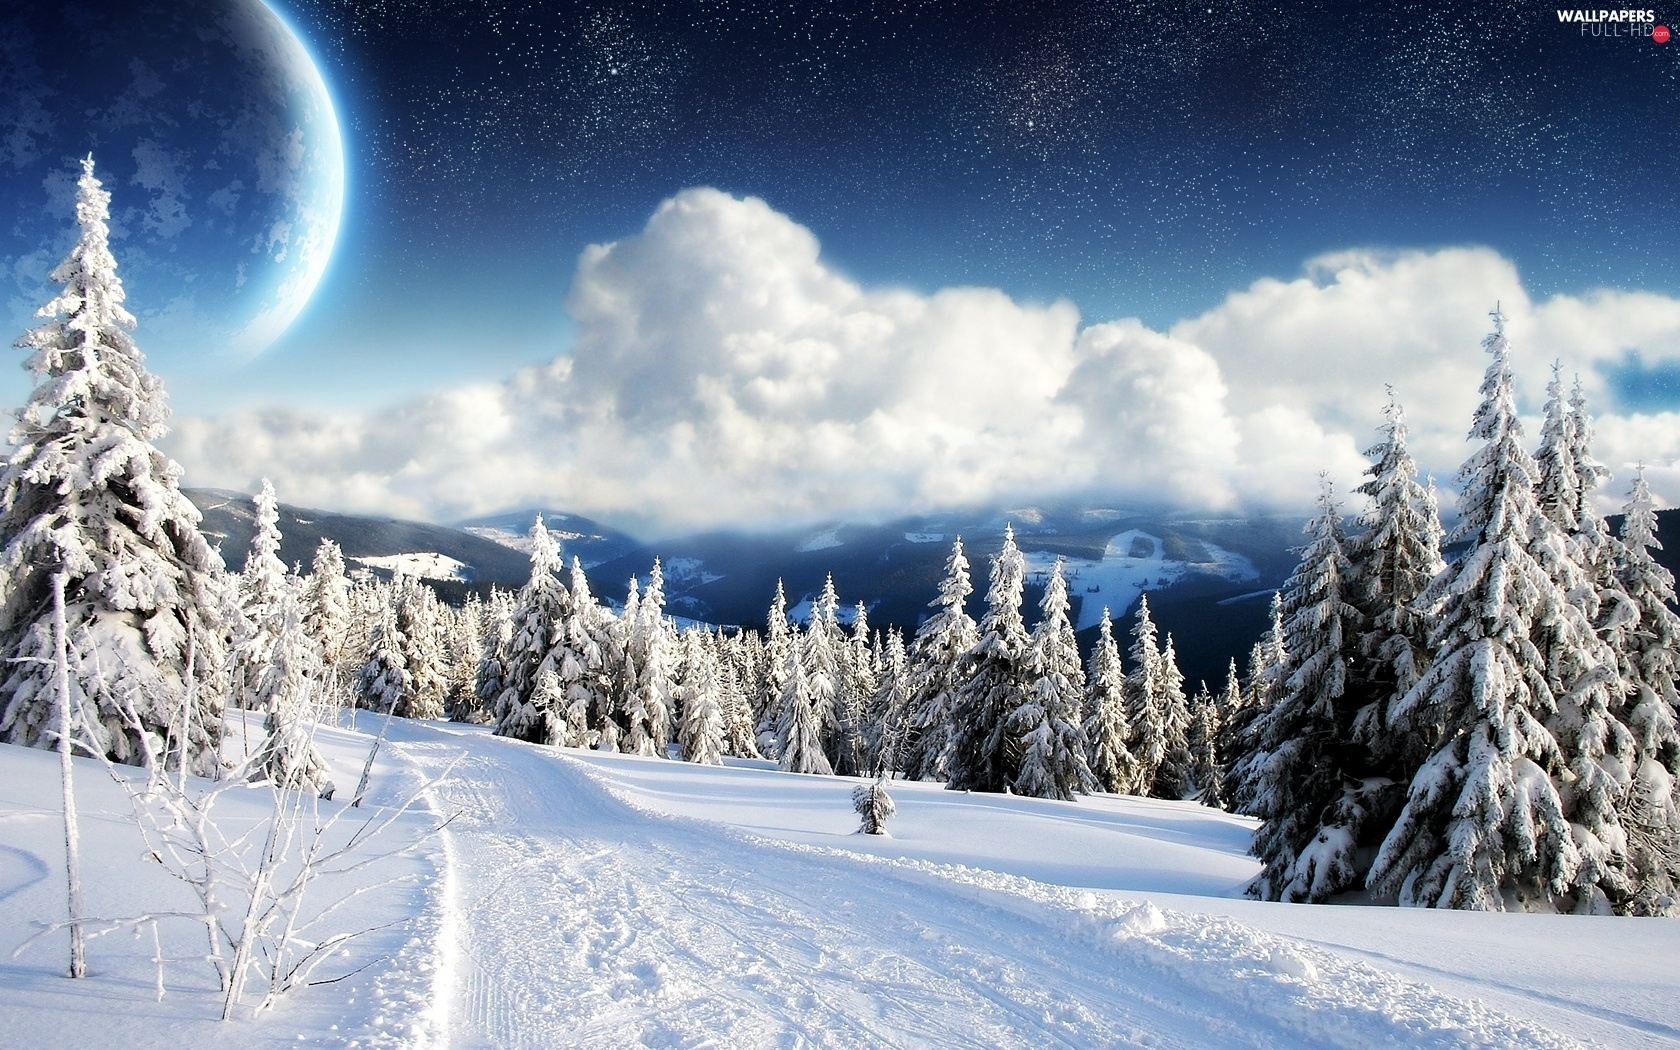 Spruces, Snowy, clouds, Planet